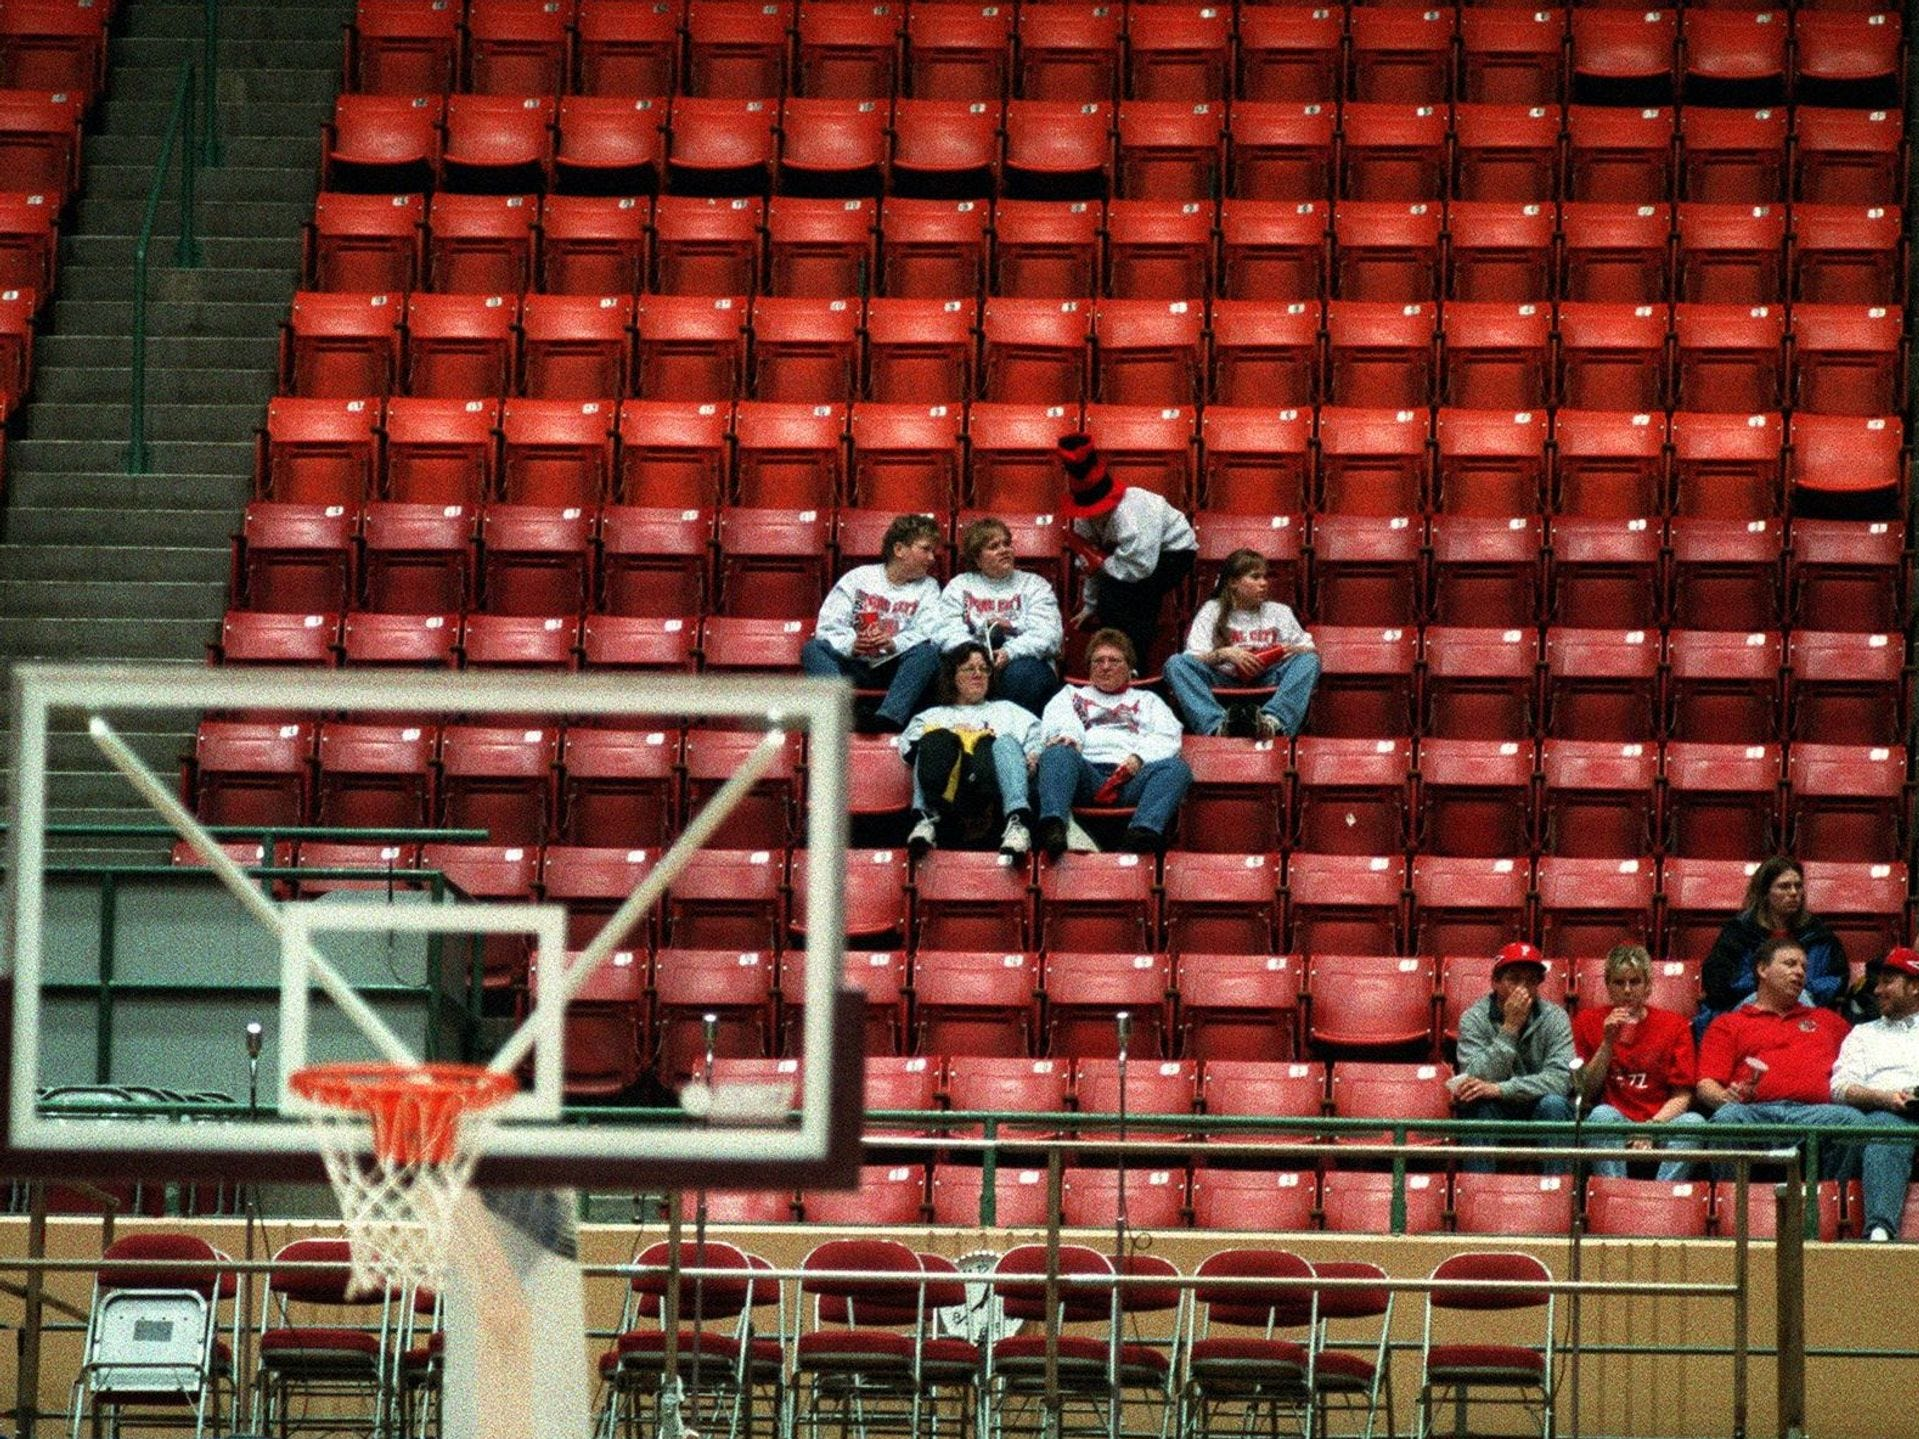 1999: Heavy snow ensured some empty seats at Veterans Memorial Auditorium in Des Moines. But the blizzard could not dampen the enthusiasm of those in attendance. Register file photo